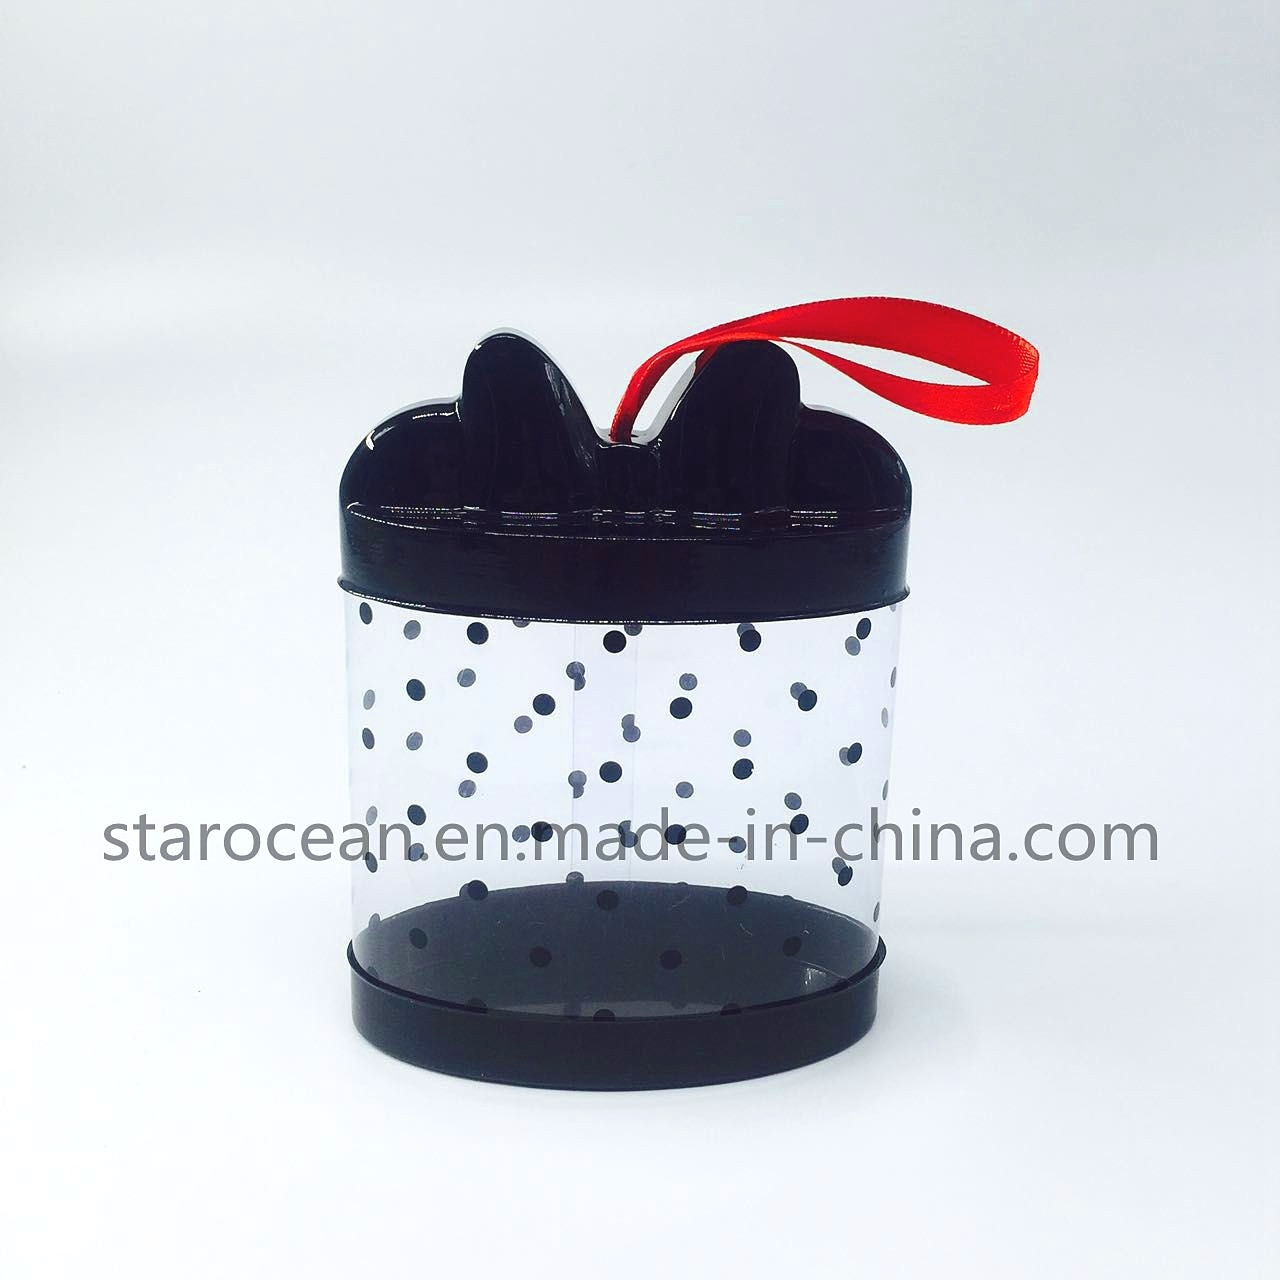 Printing PVC Plastic Packaging for Storage Box